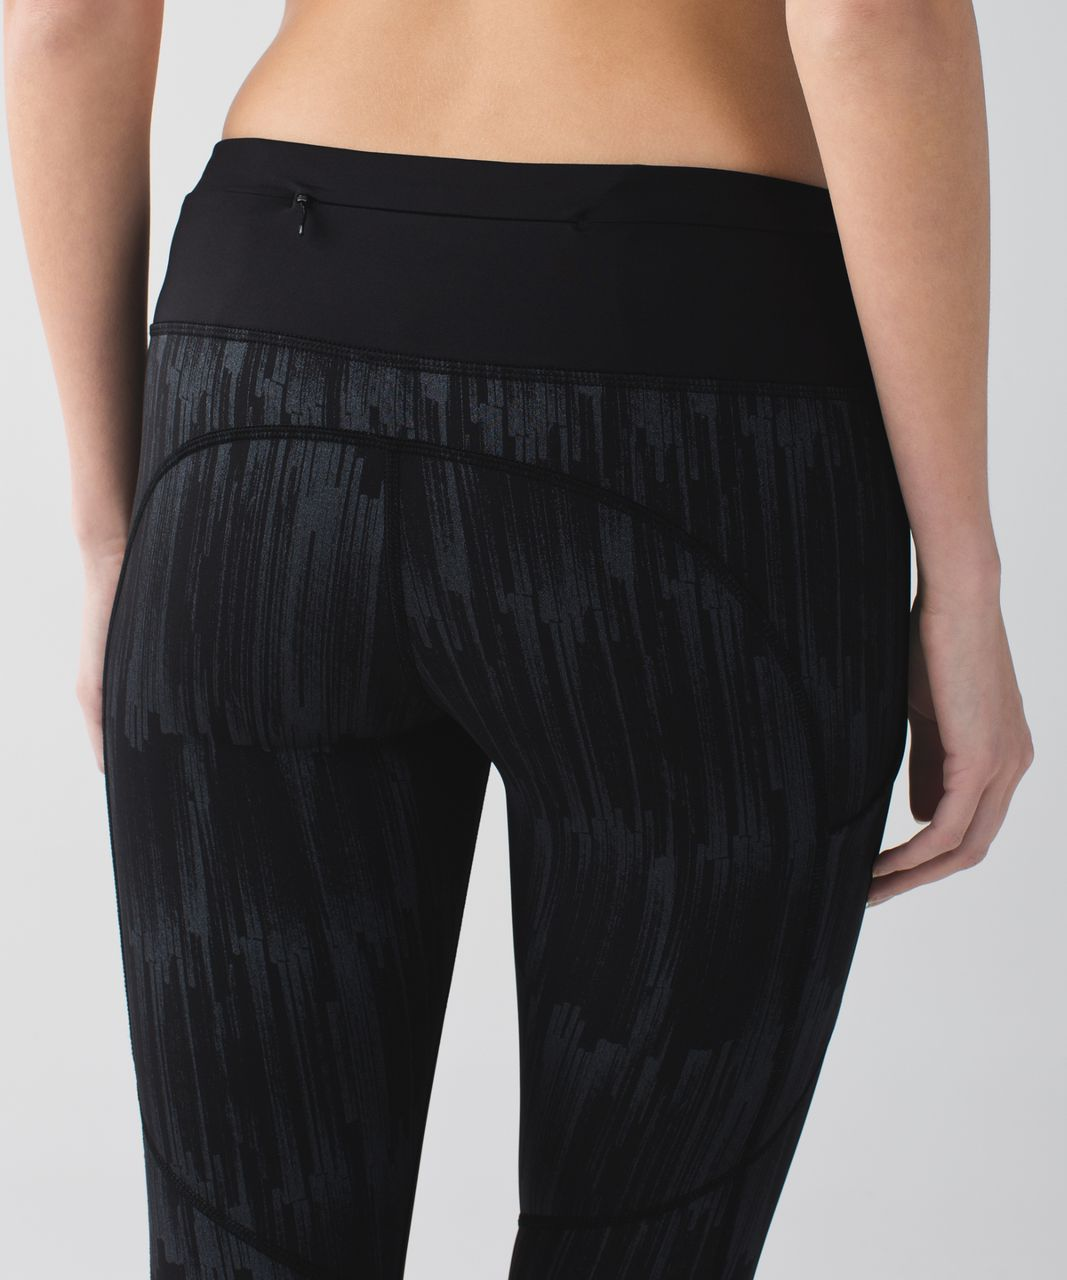 Lululemon Speed Tight III *All Full-On Luxtreme - Scratch Match Black Multi / Black